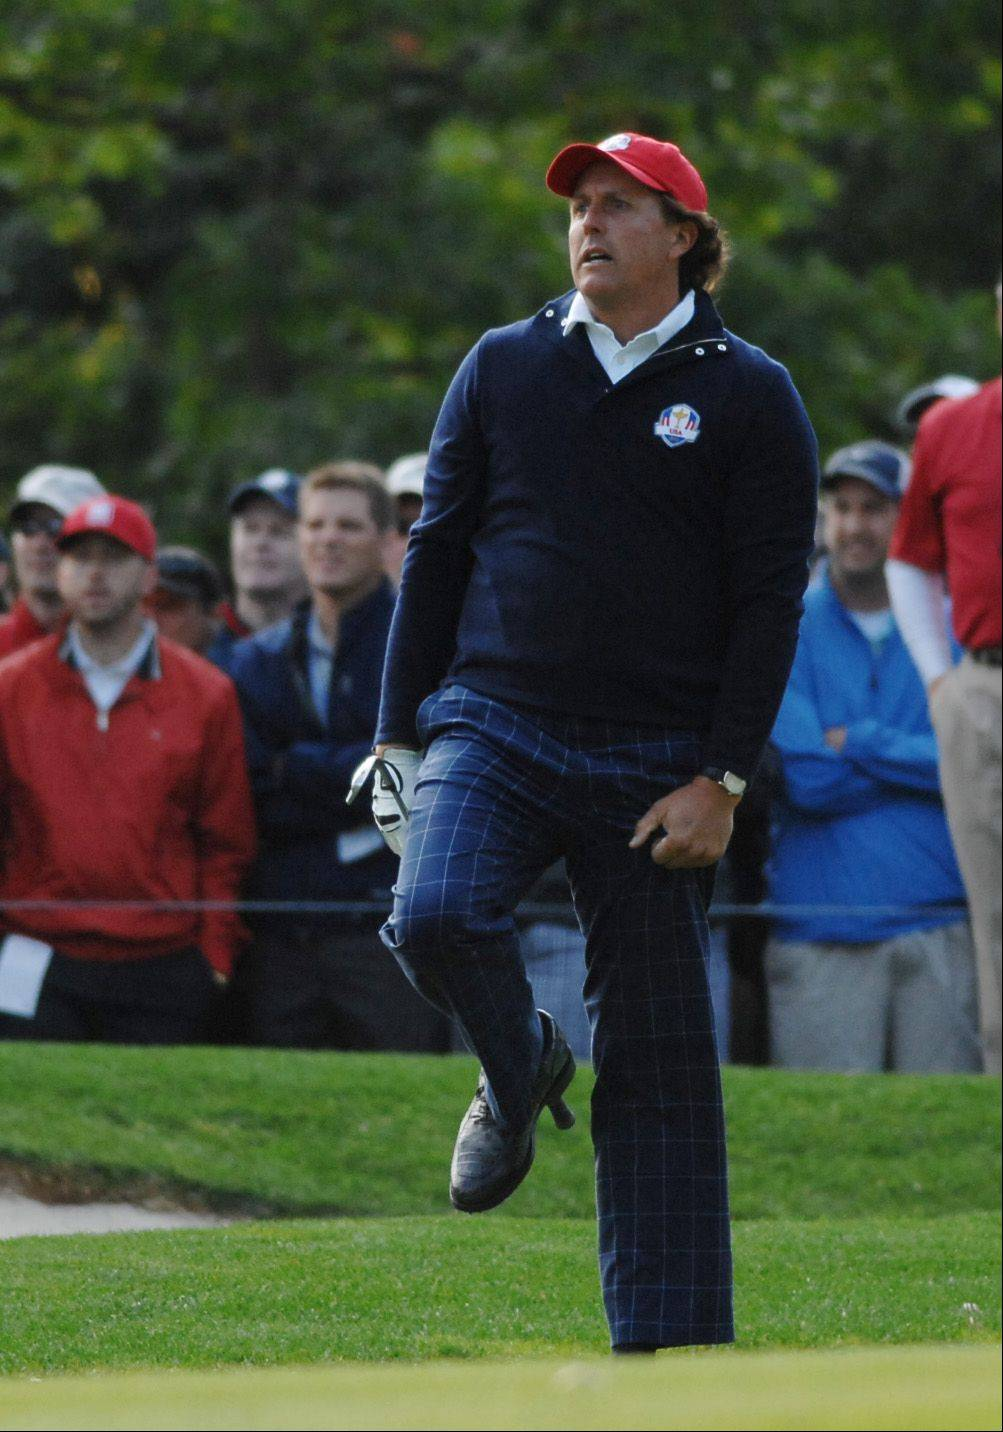 John Starks/jstarks@dailyherald.comPhil Mickelson reacts to a shot during foursome play Friday morning.